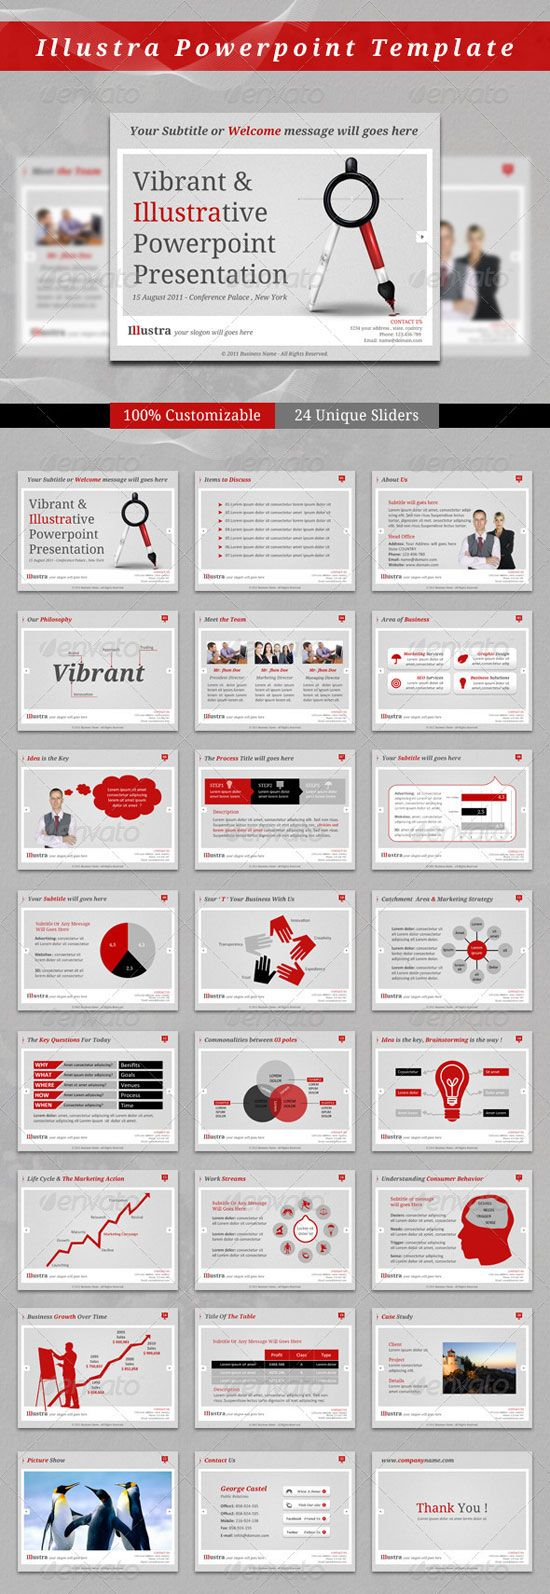 82 best ppt images on pinterest business powerpoint templates power point design theme toneelgroepblik Image collections